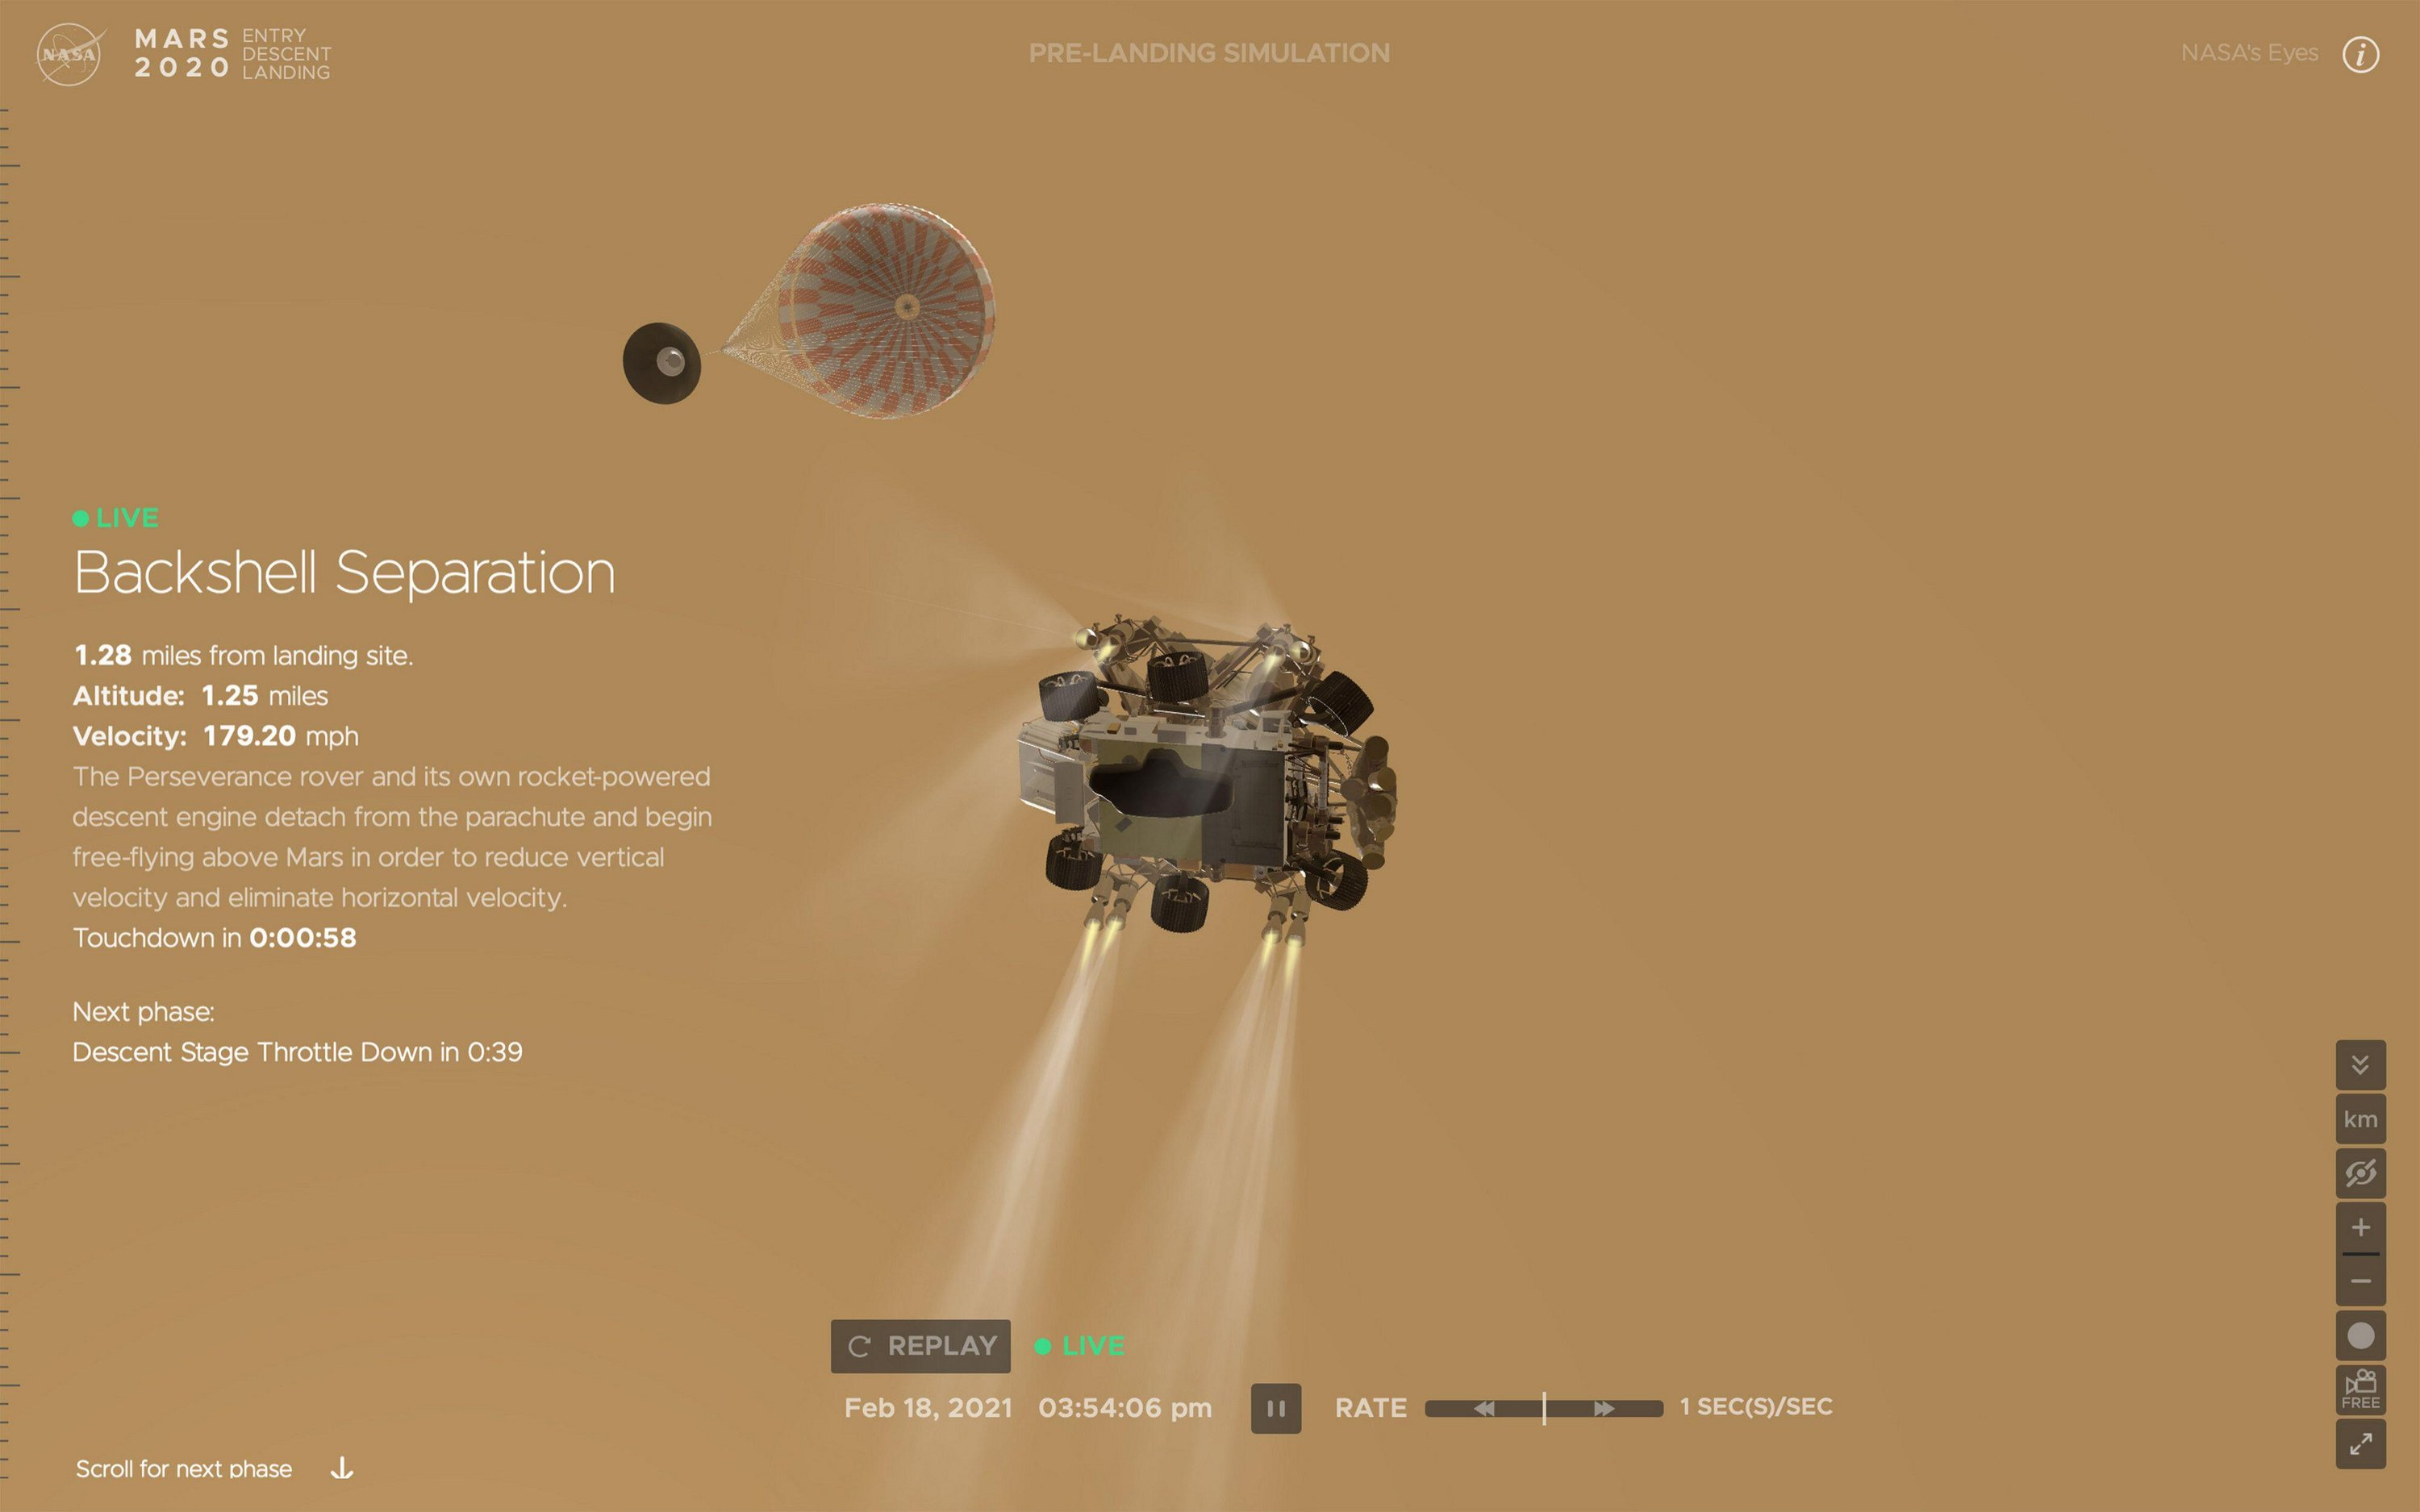 This computer simulation shows NASA's Perseverance Mars rover landing on the Martian surface